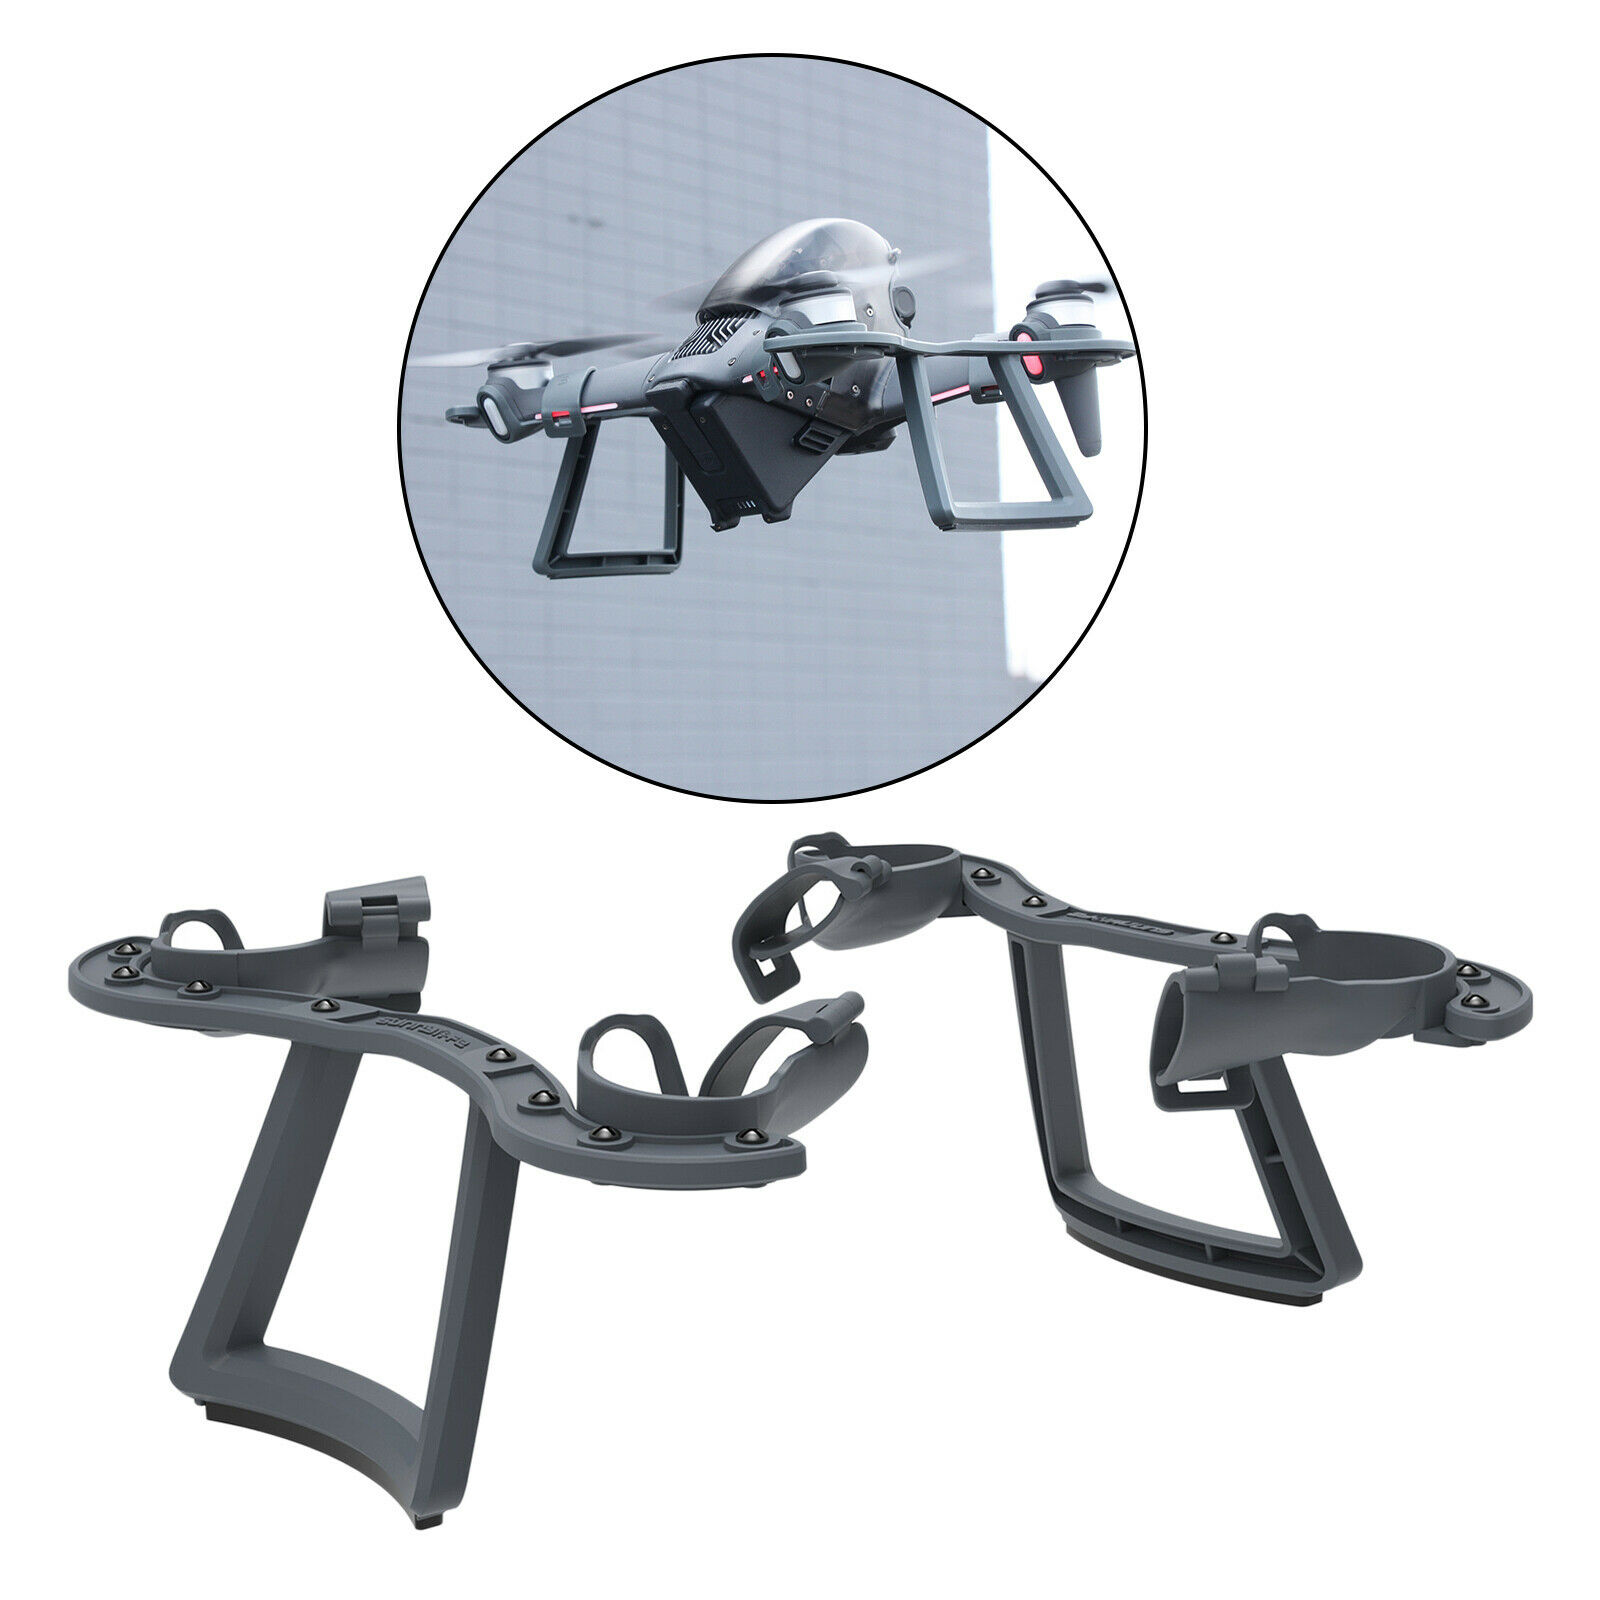 Heightening Tripod for DJI FPV Leg Extended Drone Protective Accessories